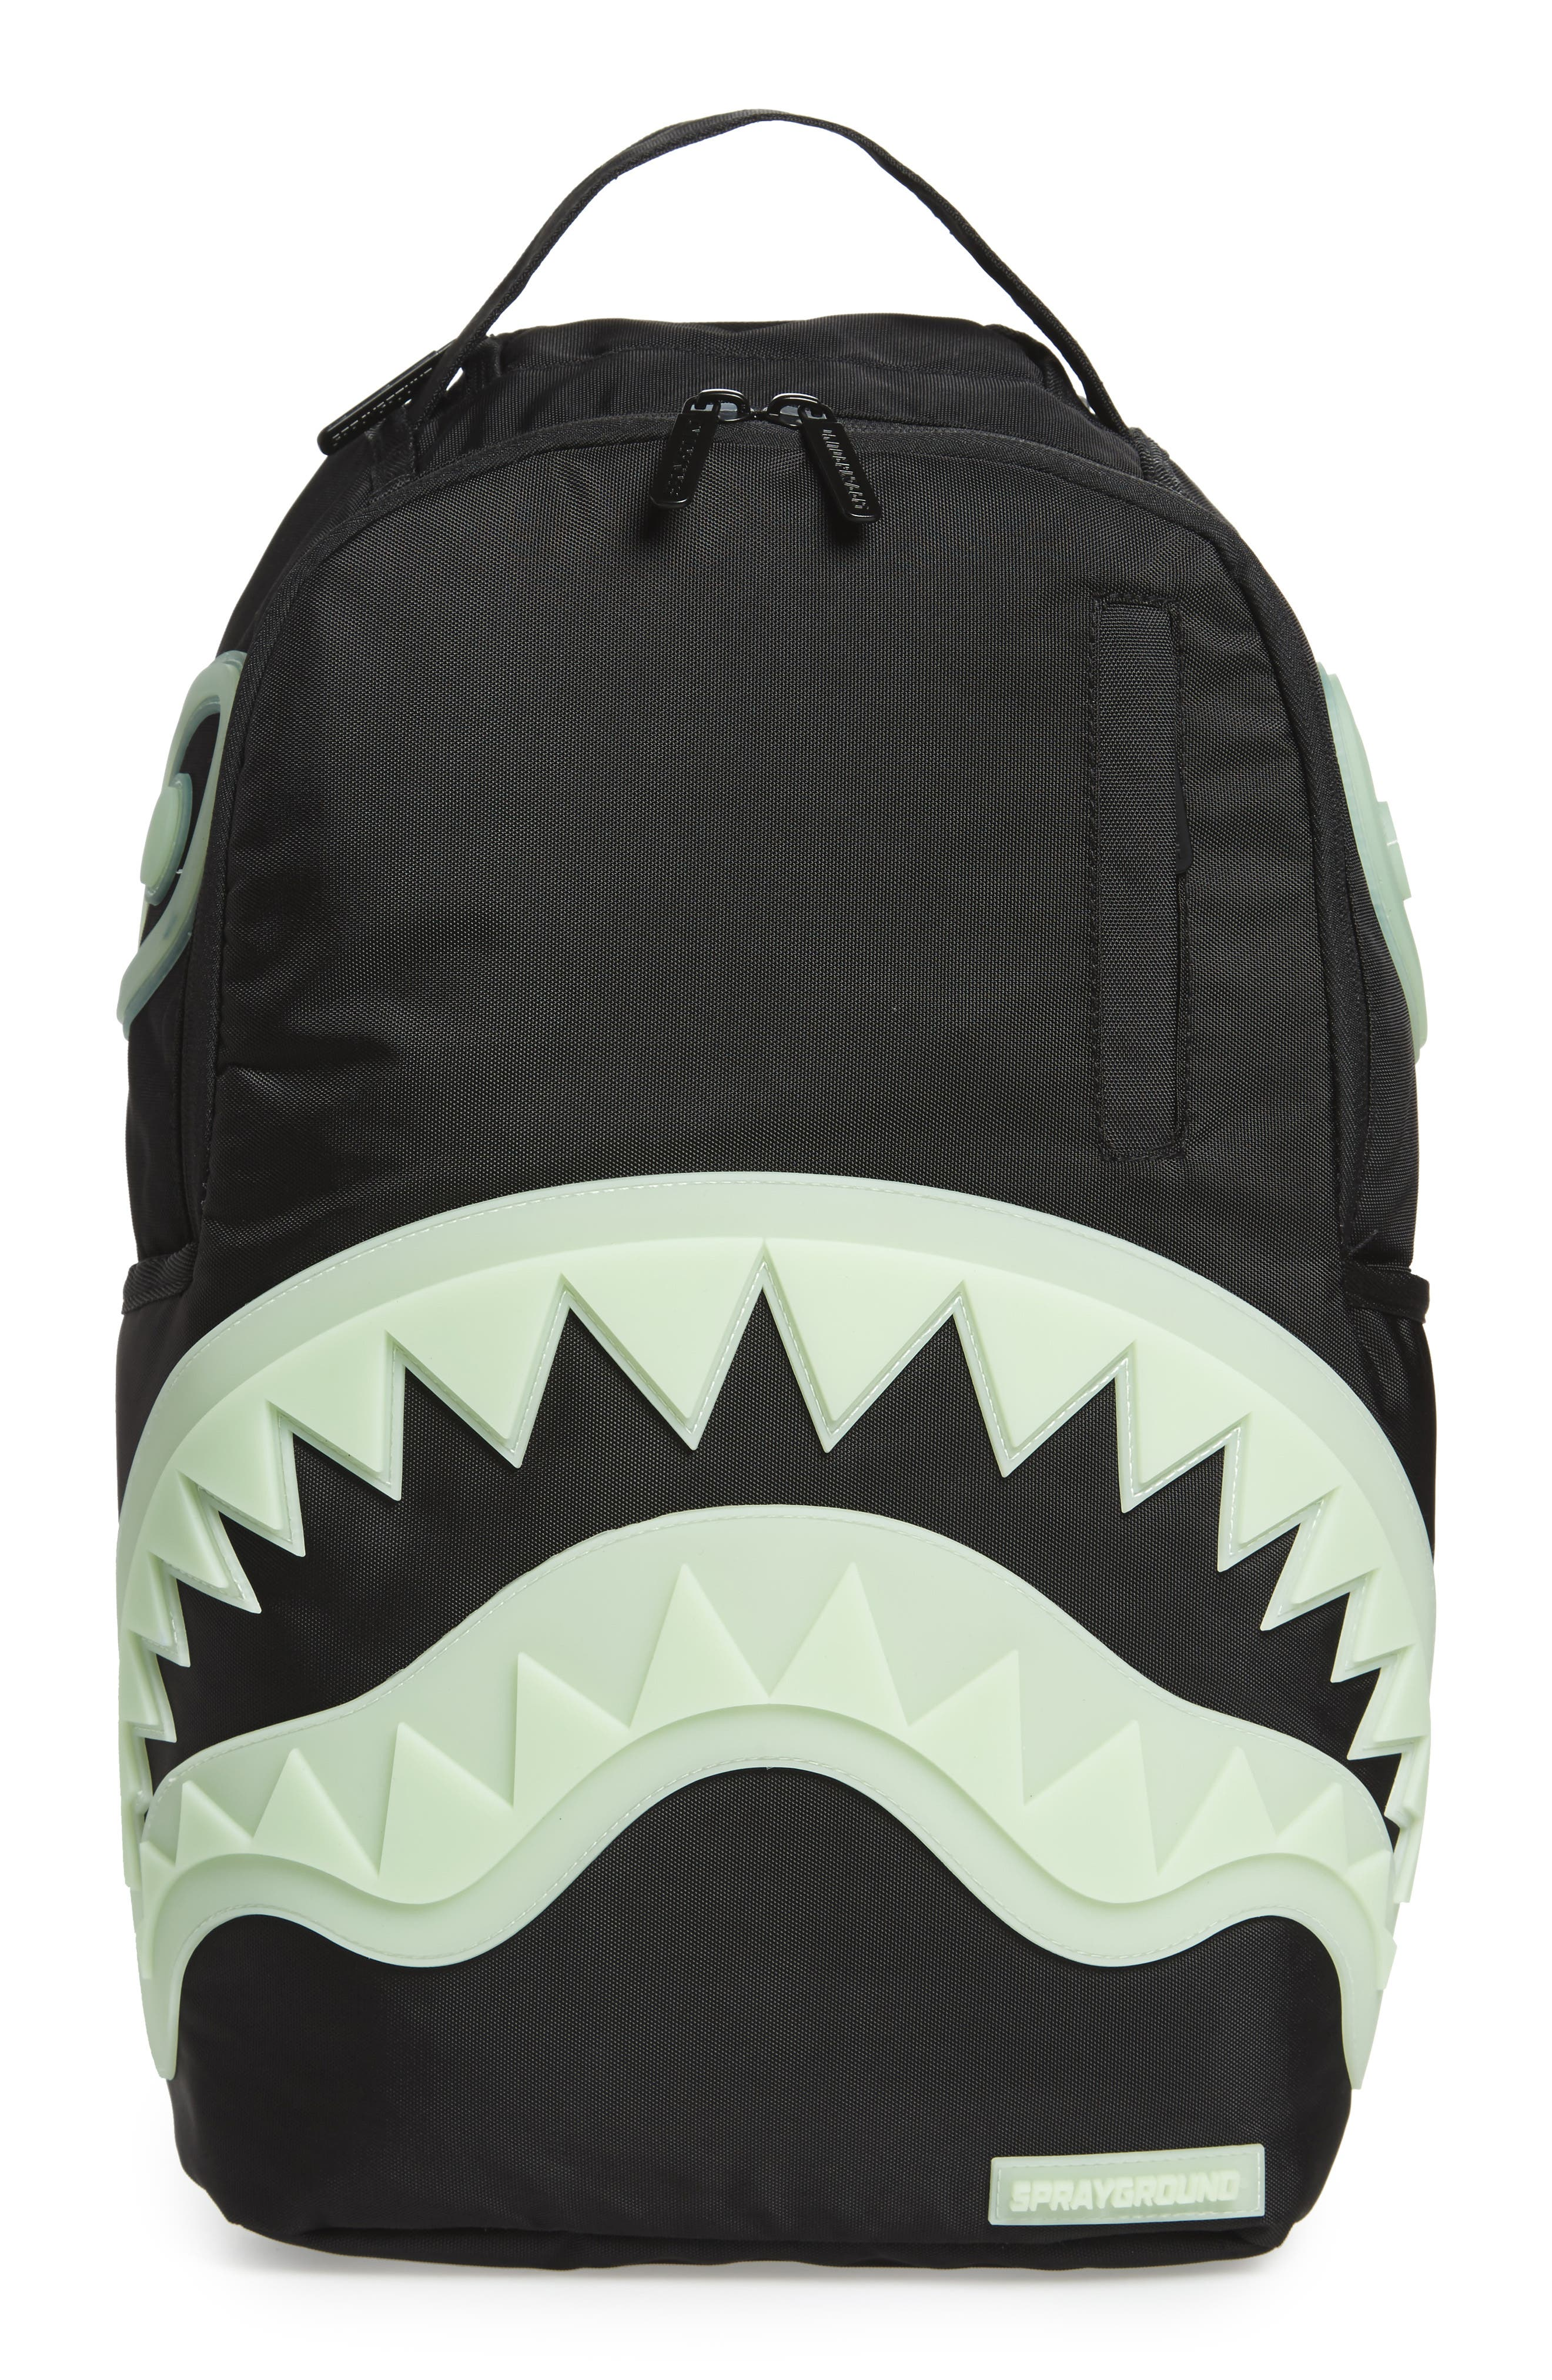 Glow in the Dark Shark Backpack,                             Main thumbnail 1, color,                             Black